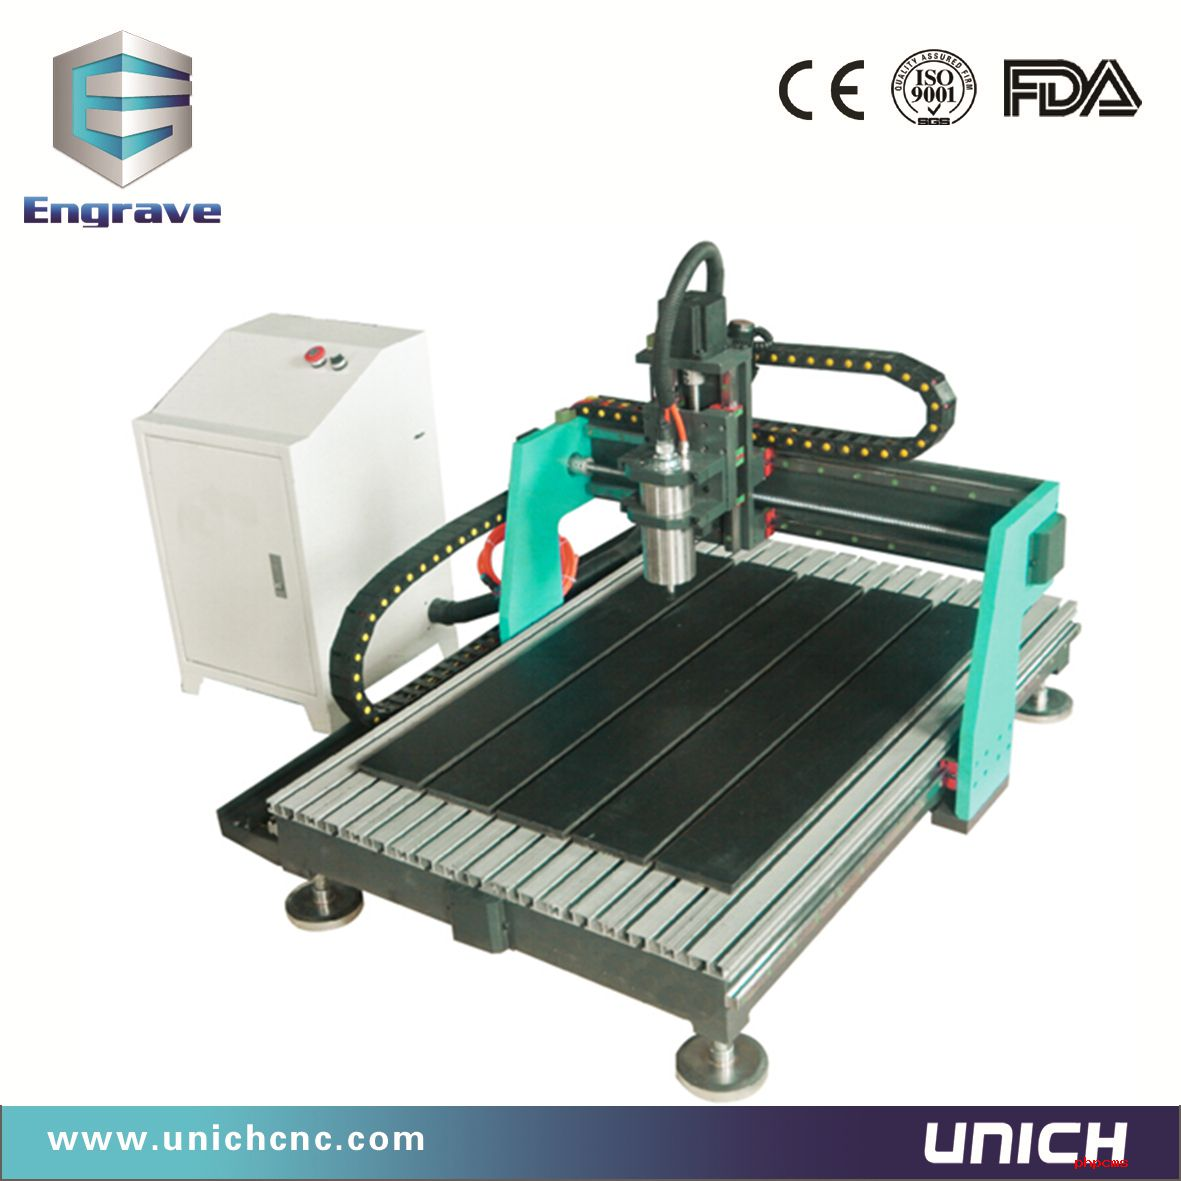 600x900mm working area LXG0609 mini cnc router